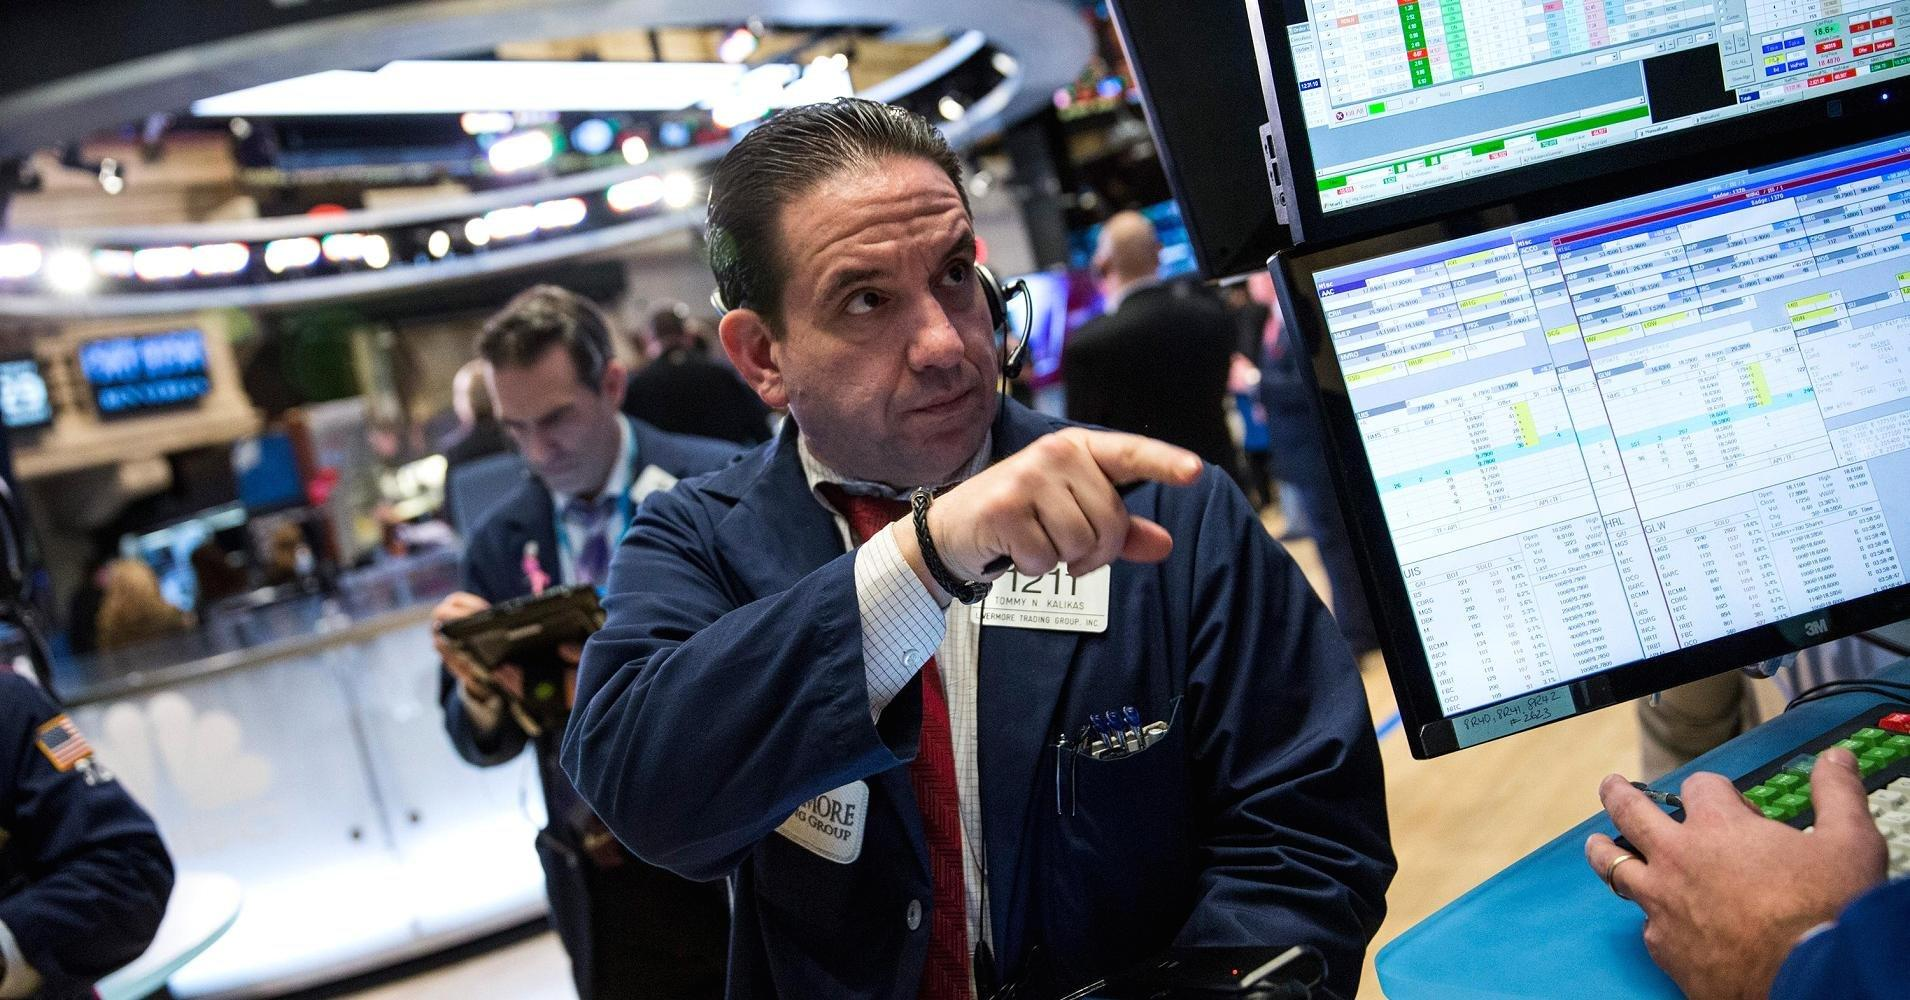 Stocks slide as Trump policy uncertainty weighs; energy and industrials lag